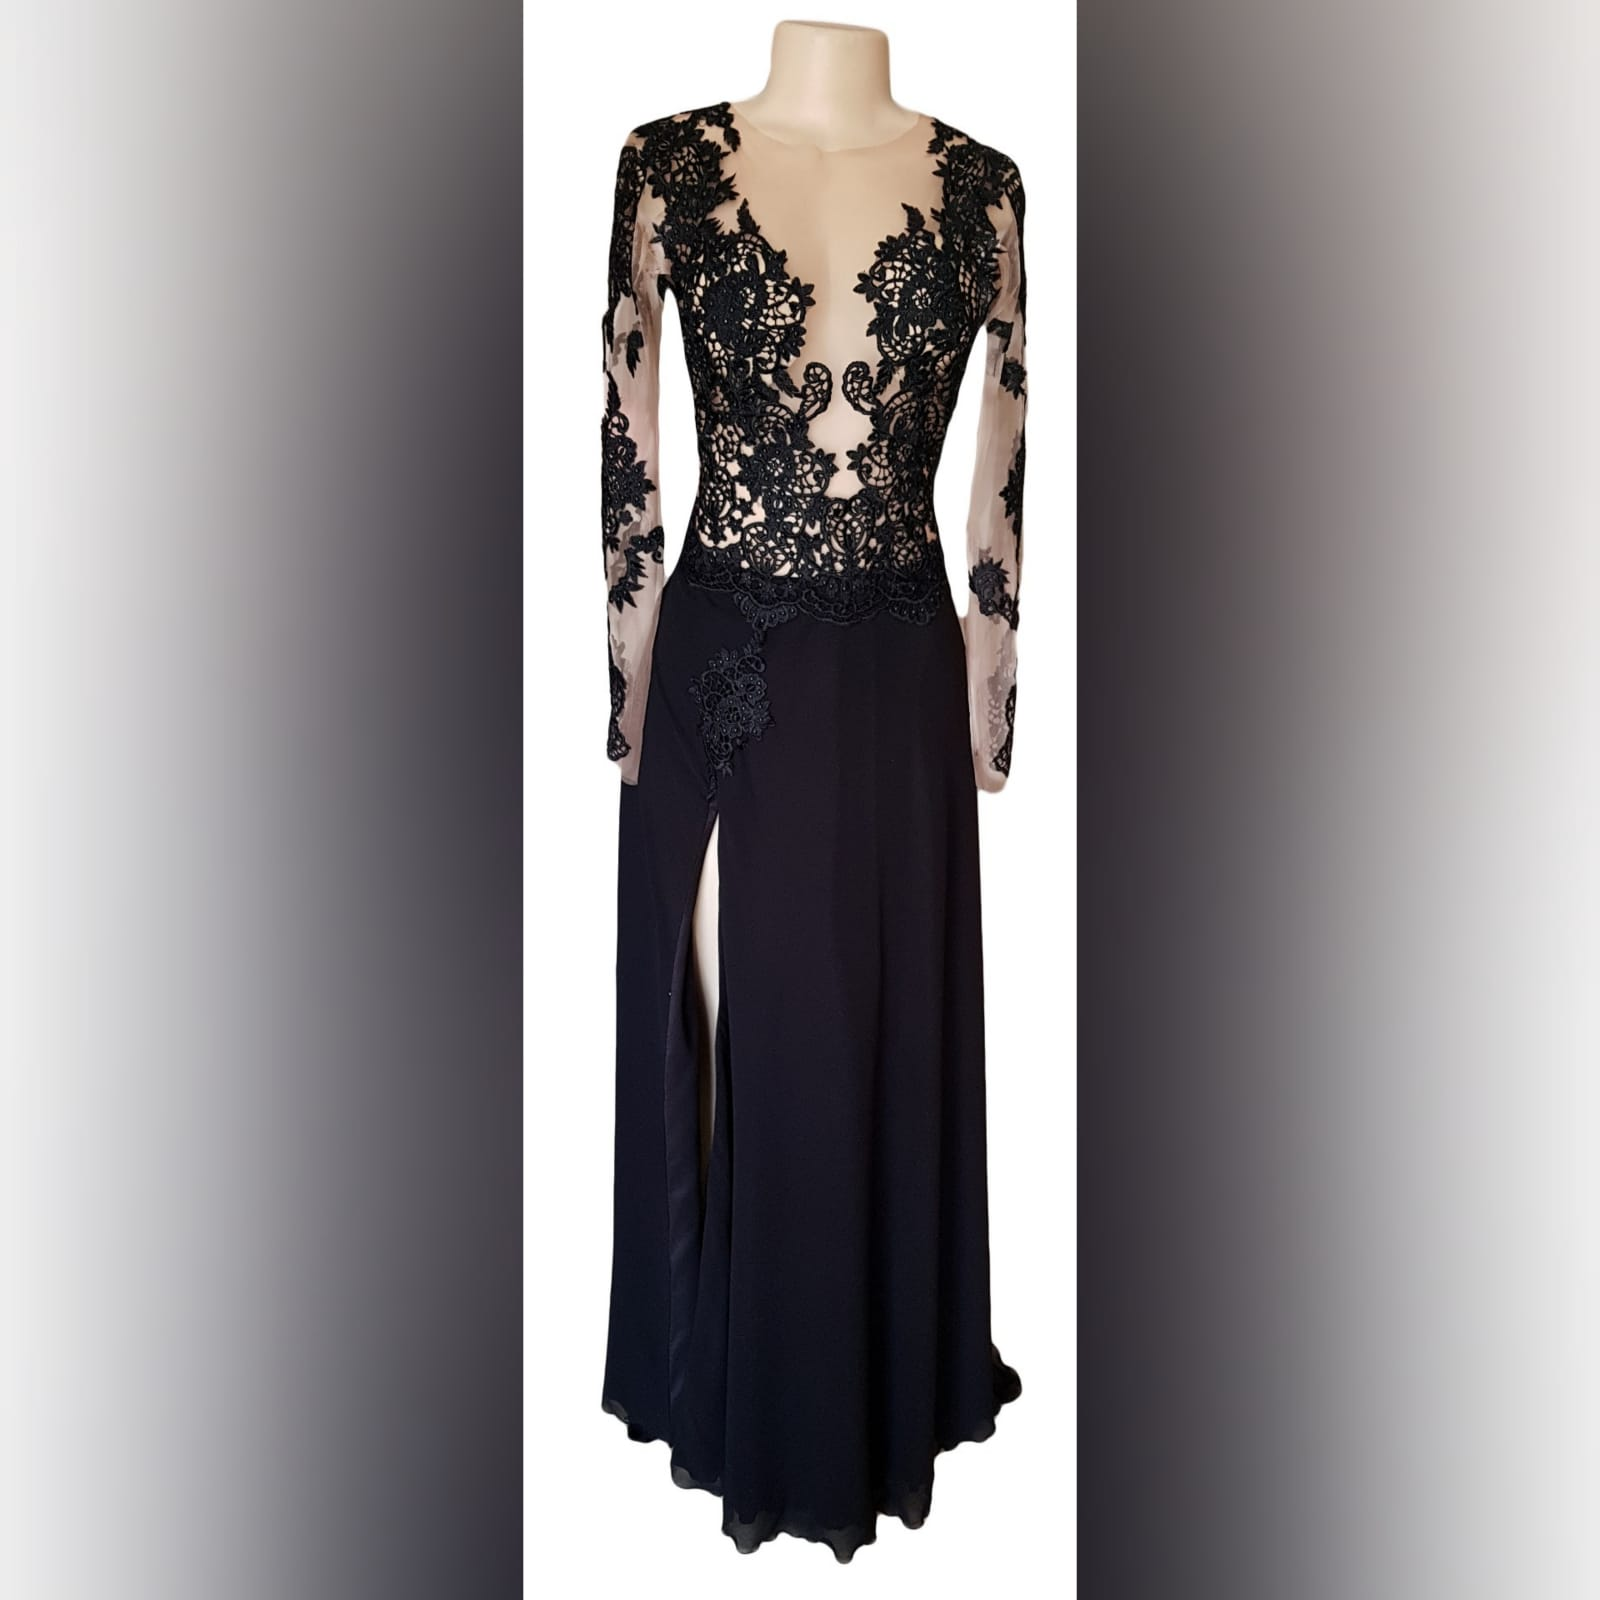 Black lace long flowy prom dress 2 black lace long flowy prom dress with an illusion plunging neckline, long illusion lace sleeves, v open back with a train and a slit.